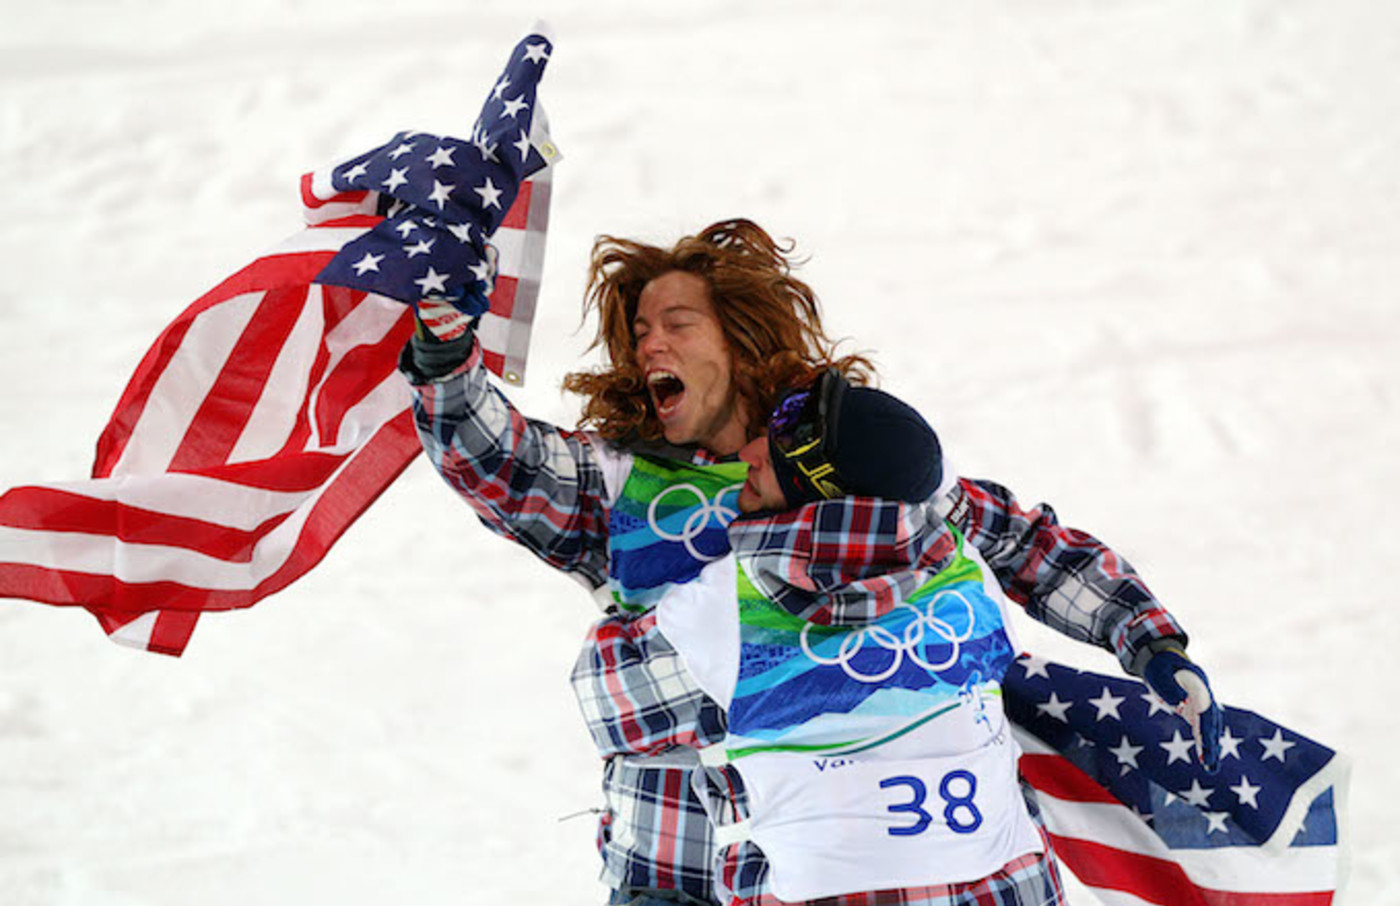 Shaun White after winning gold at 2010 Olympics.